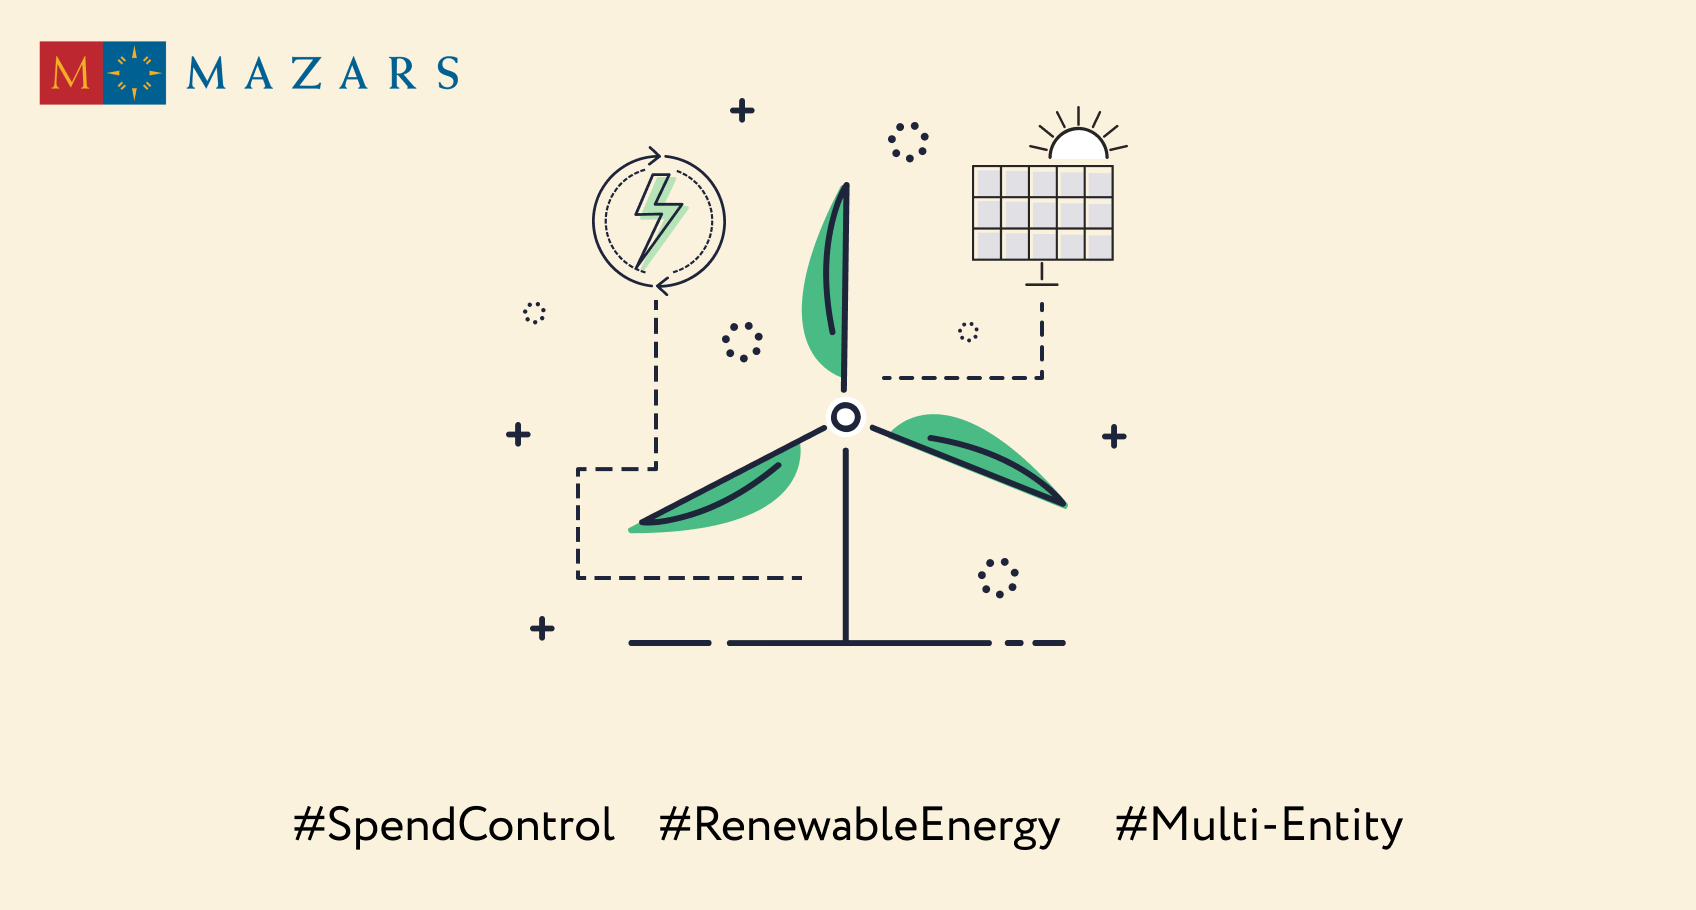 Spend control for a multi-entity company in the renewable energy sector: from construction to operation